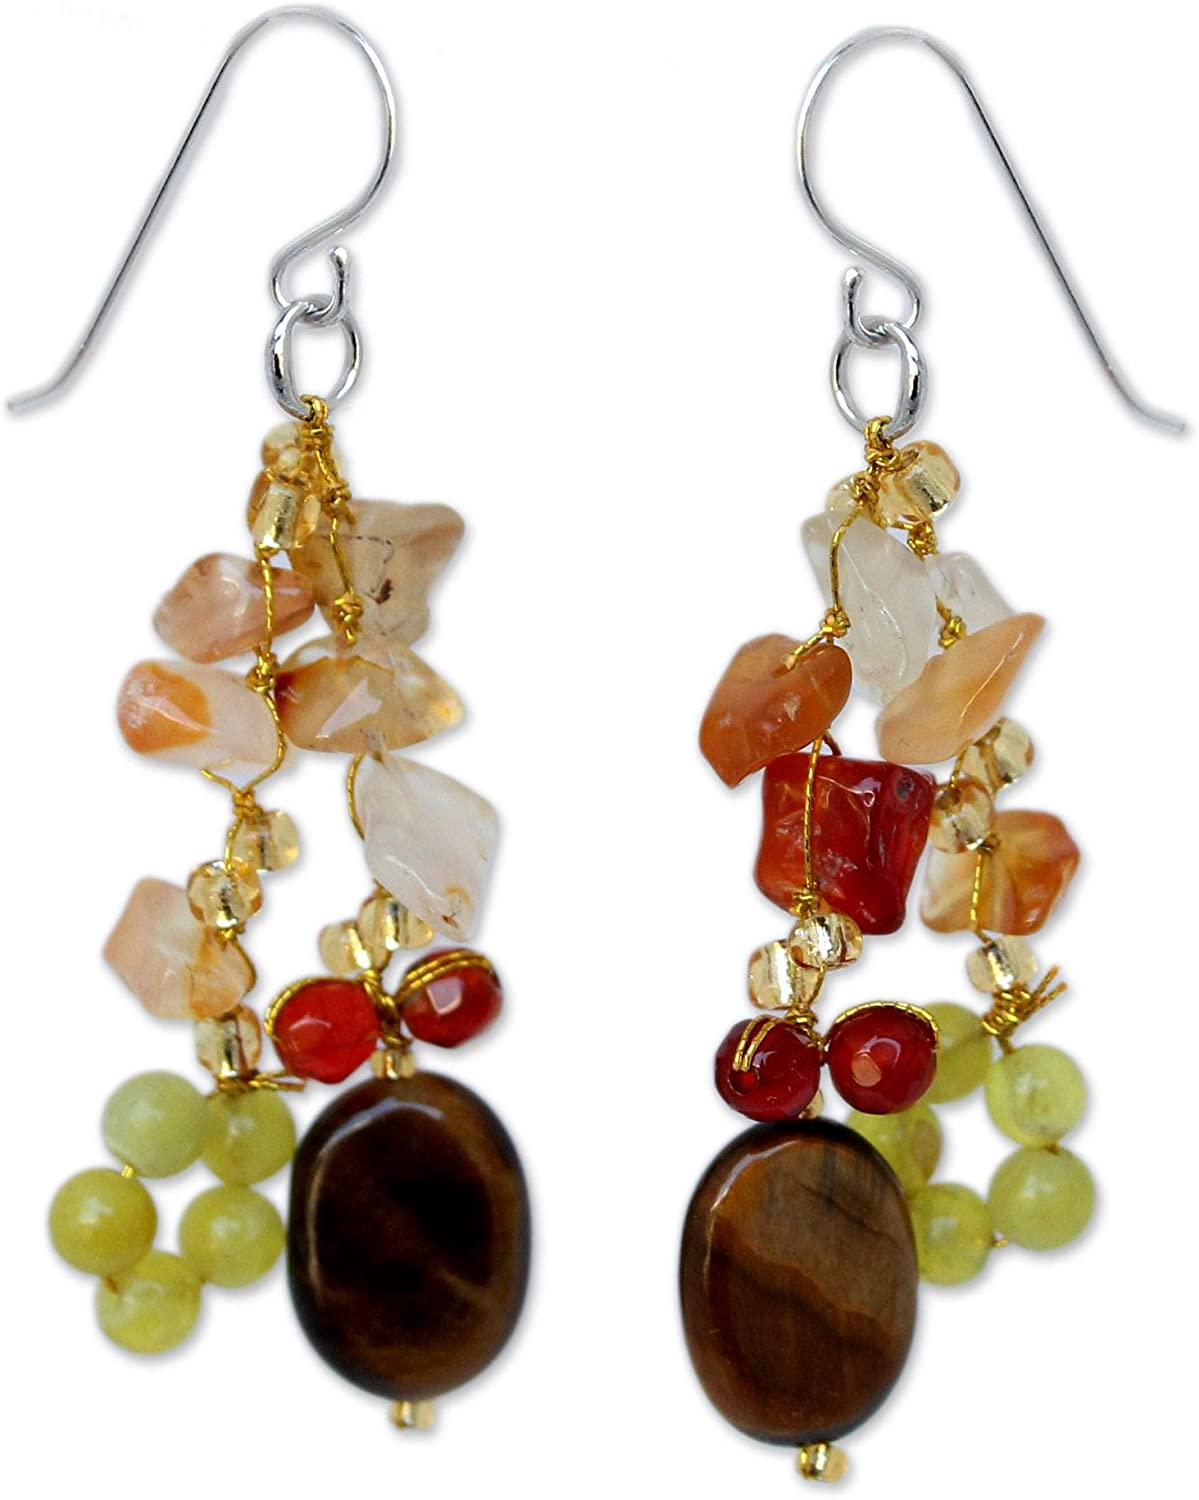 UNIQUE /& DIFFERENT COLOR STONE HANDMADE EARRING ONLY IN 925 STERLING SILVER